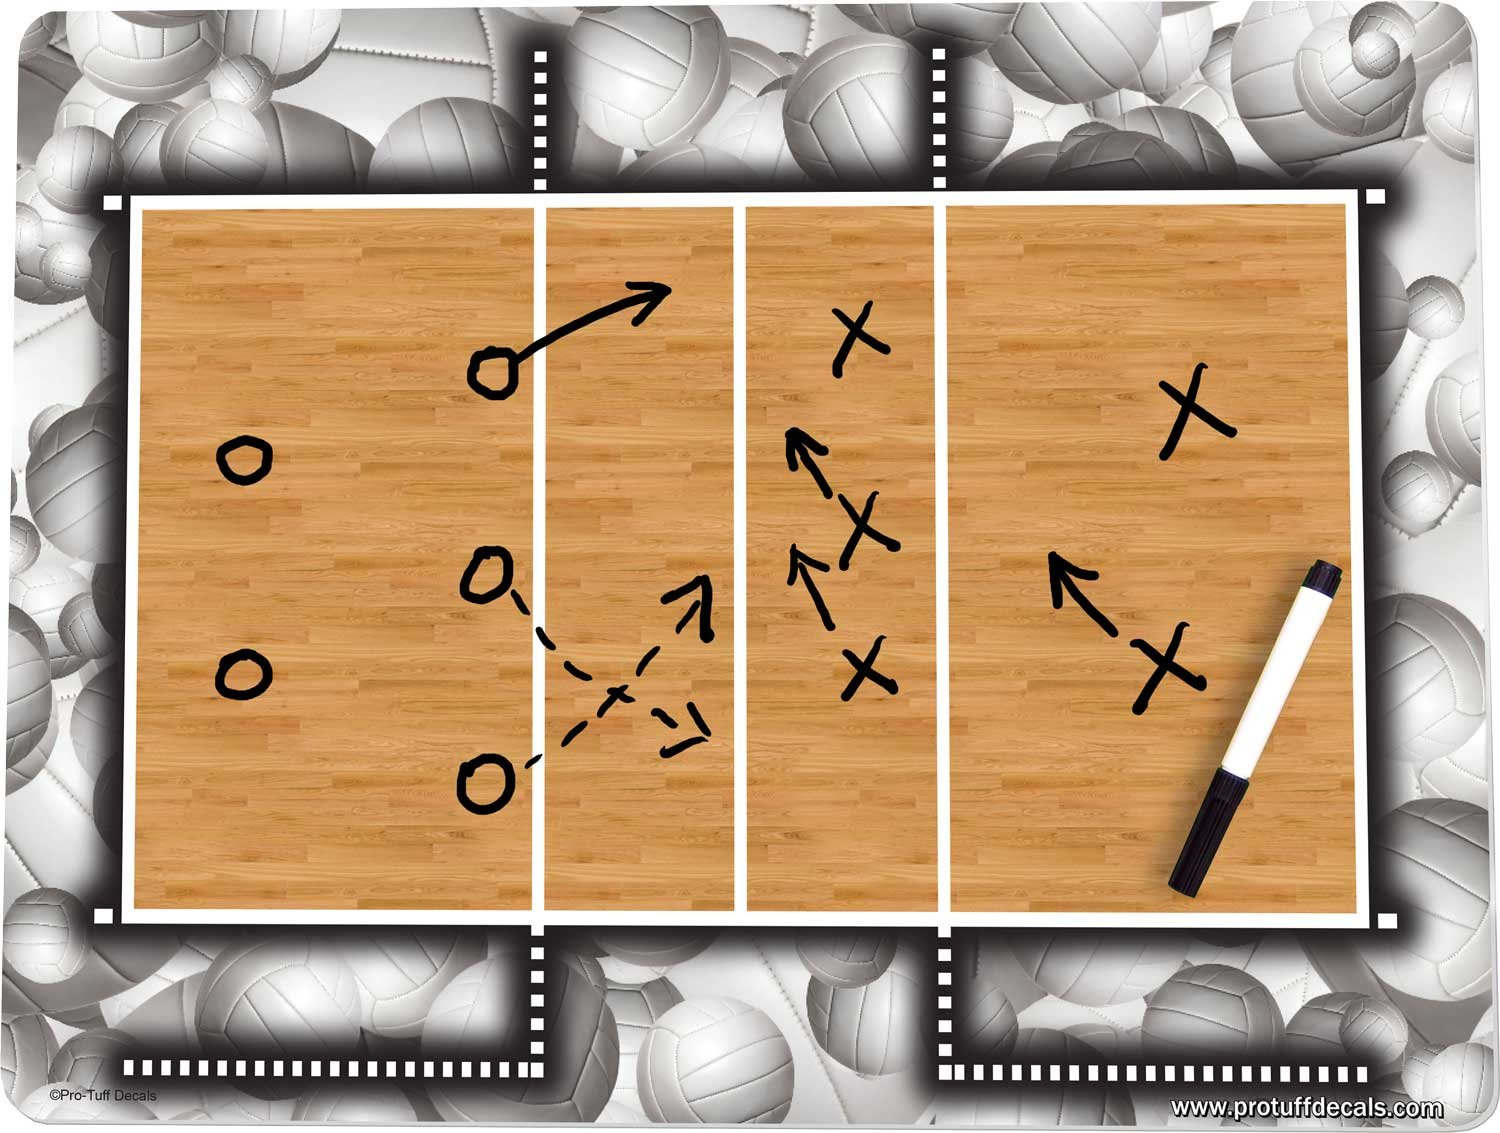 Volleyball Coach's Board Volleyball Court Board 18'' x 24'' Dry Erase Play Board Pro-Tuff Board